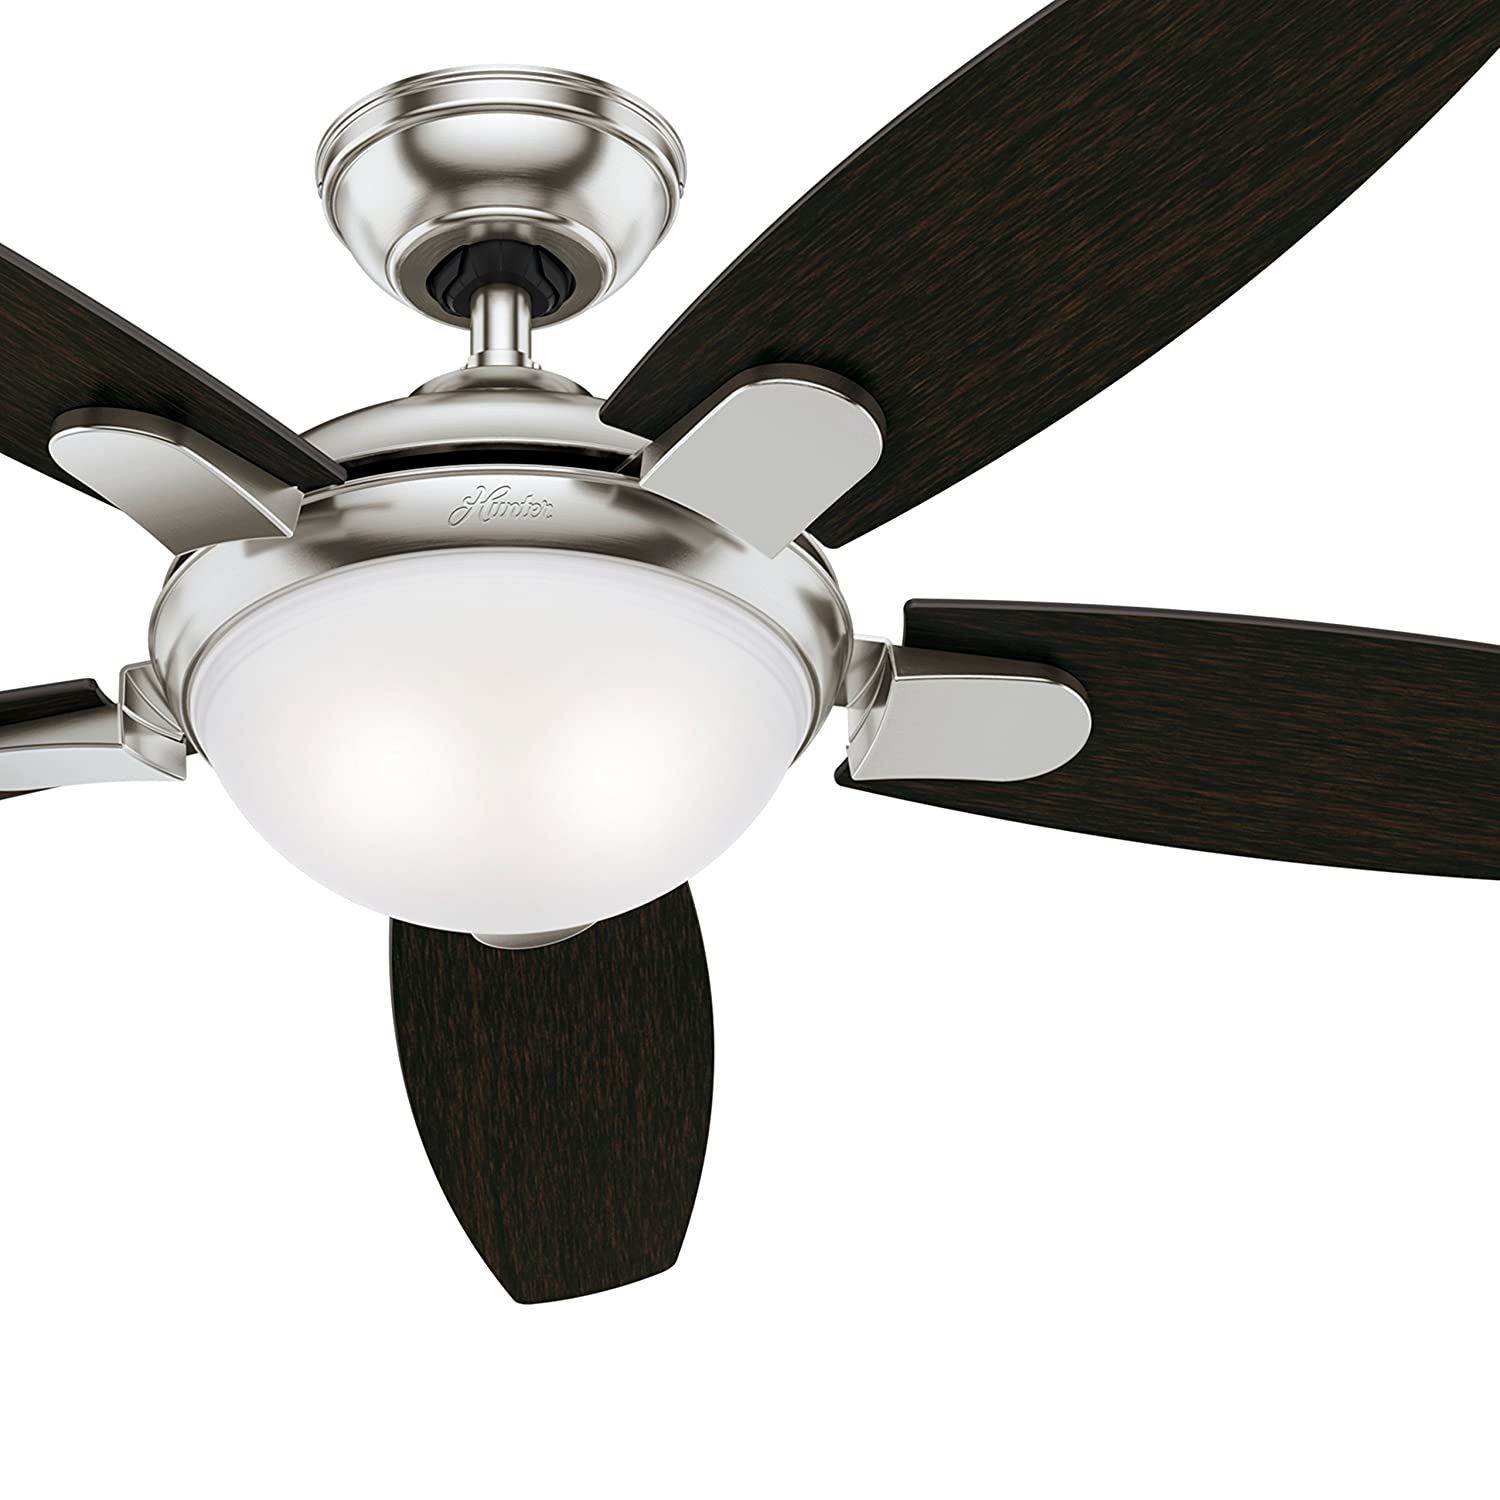 Hunter 54 in. Contemporary Ceiling Fan in Brushed Nickel with LED Light and Remote Control (Certified Refurbished) Hunter Fan Company CC5C94C76